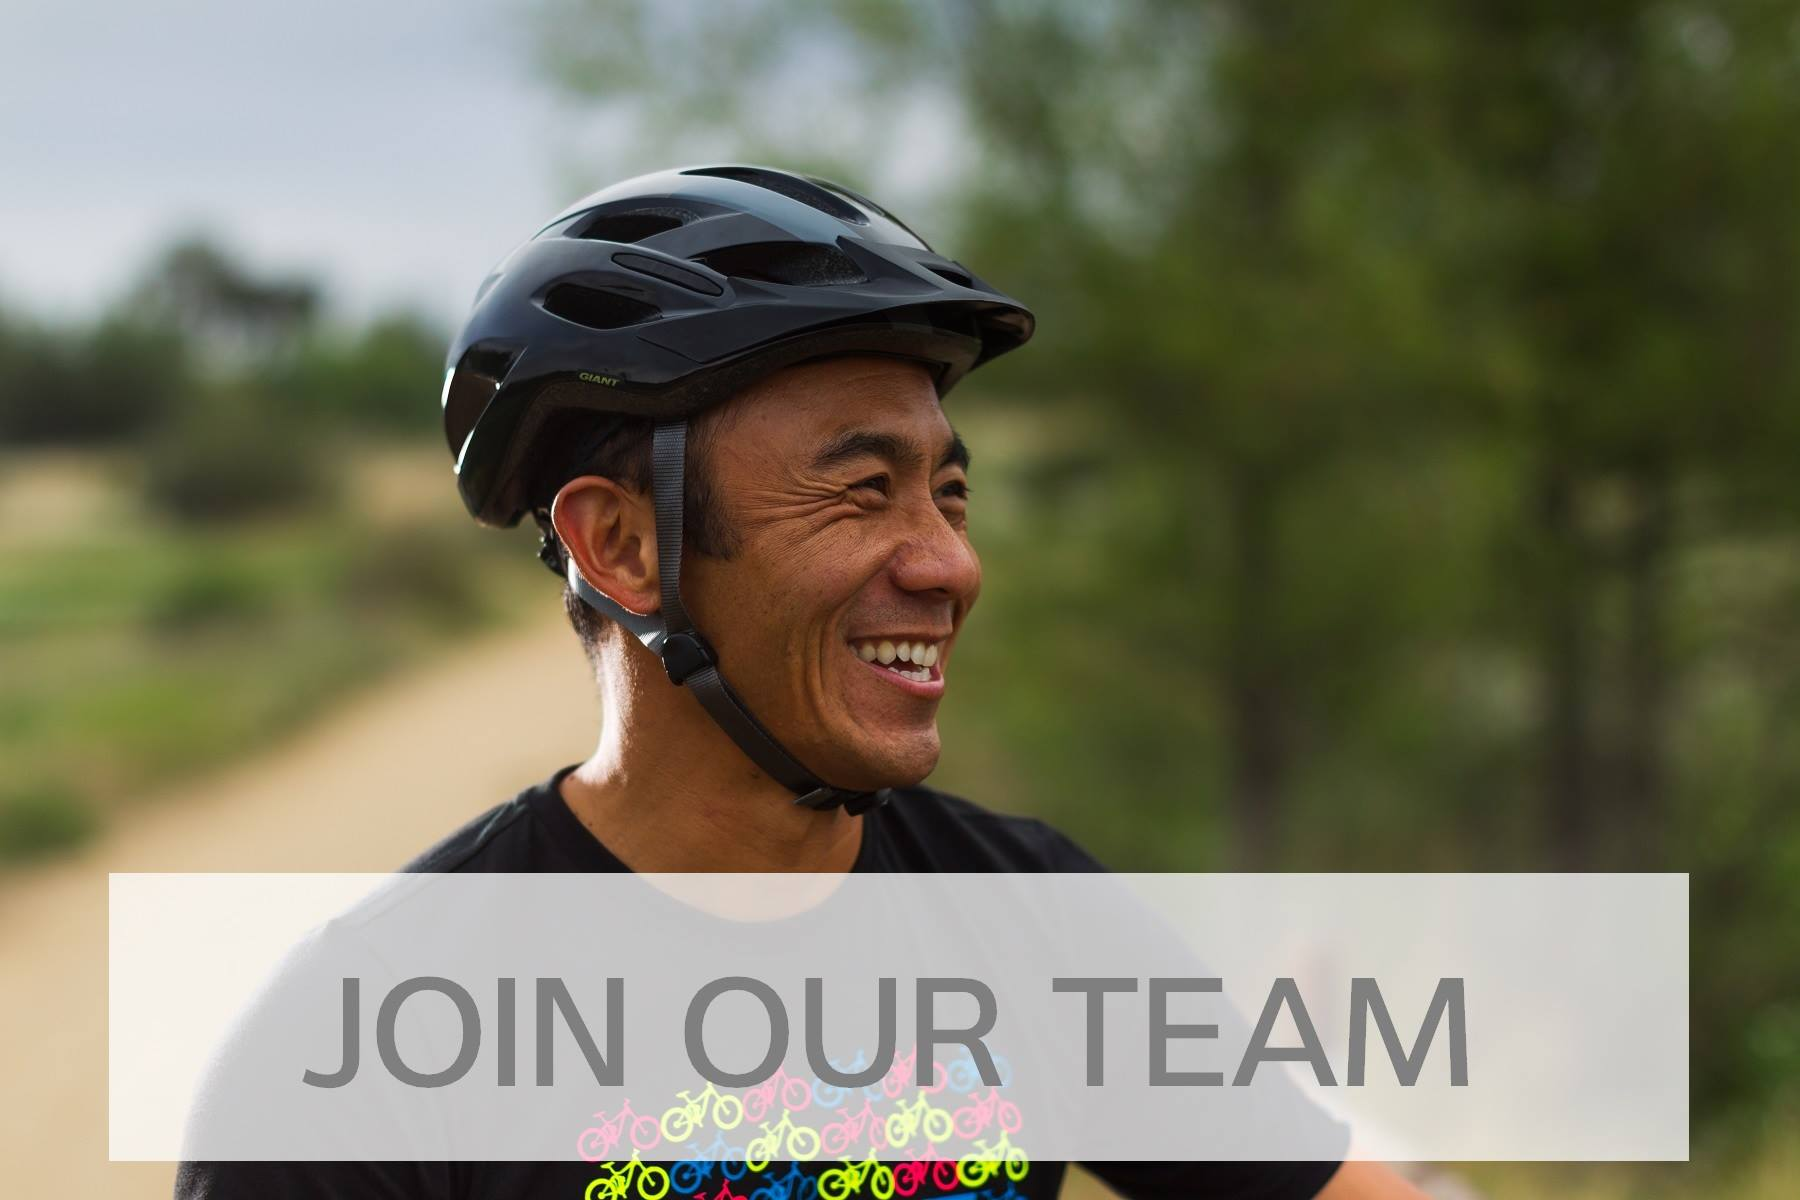 Giant-bicycles-hiring